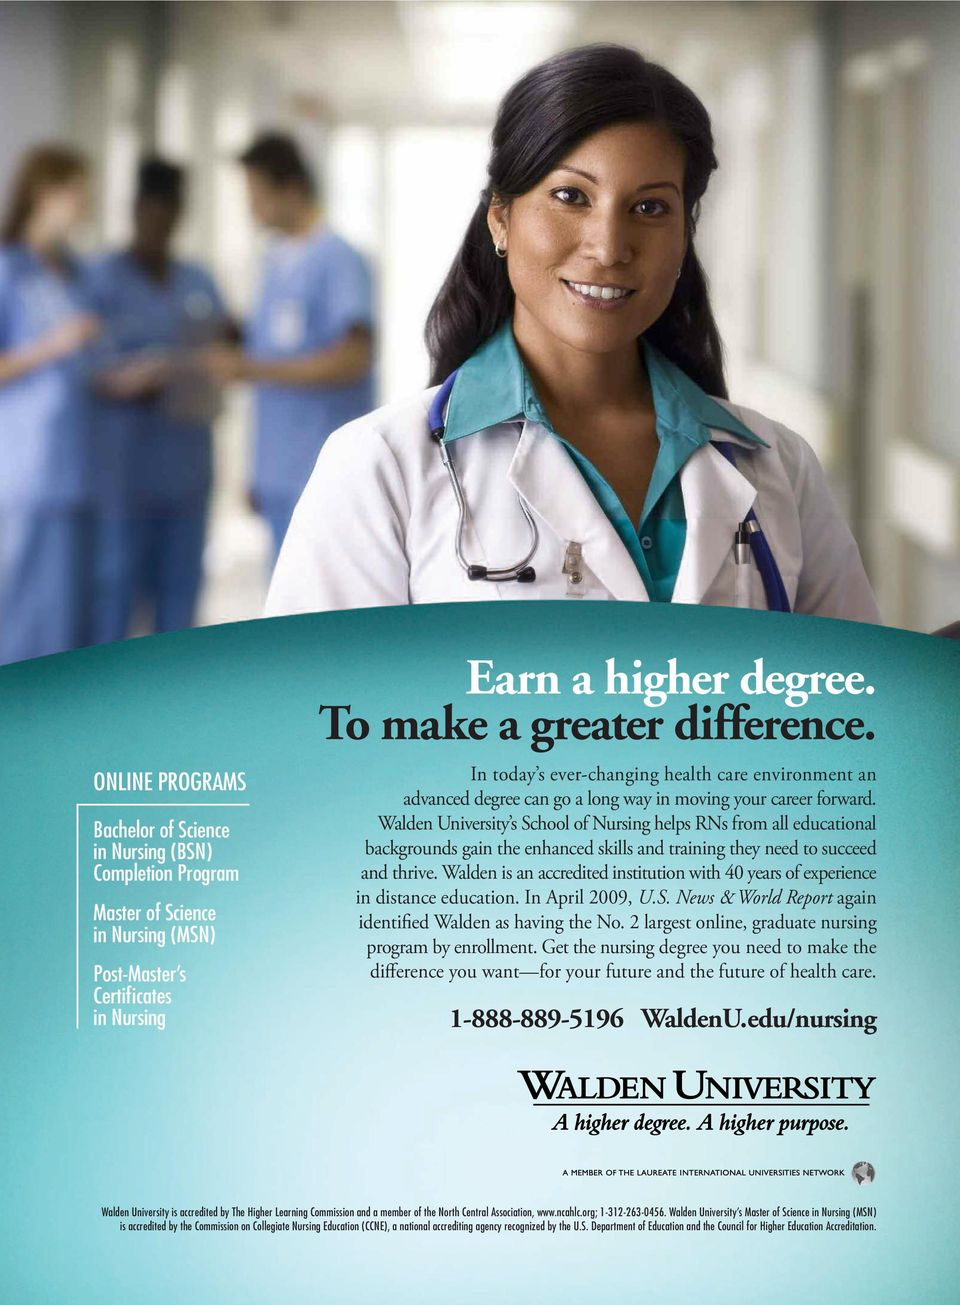 Walden University s School of Nursing helps RNs from all educational backgrounds gain the enhanced skills and training they need to succeed and thrive.